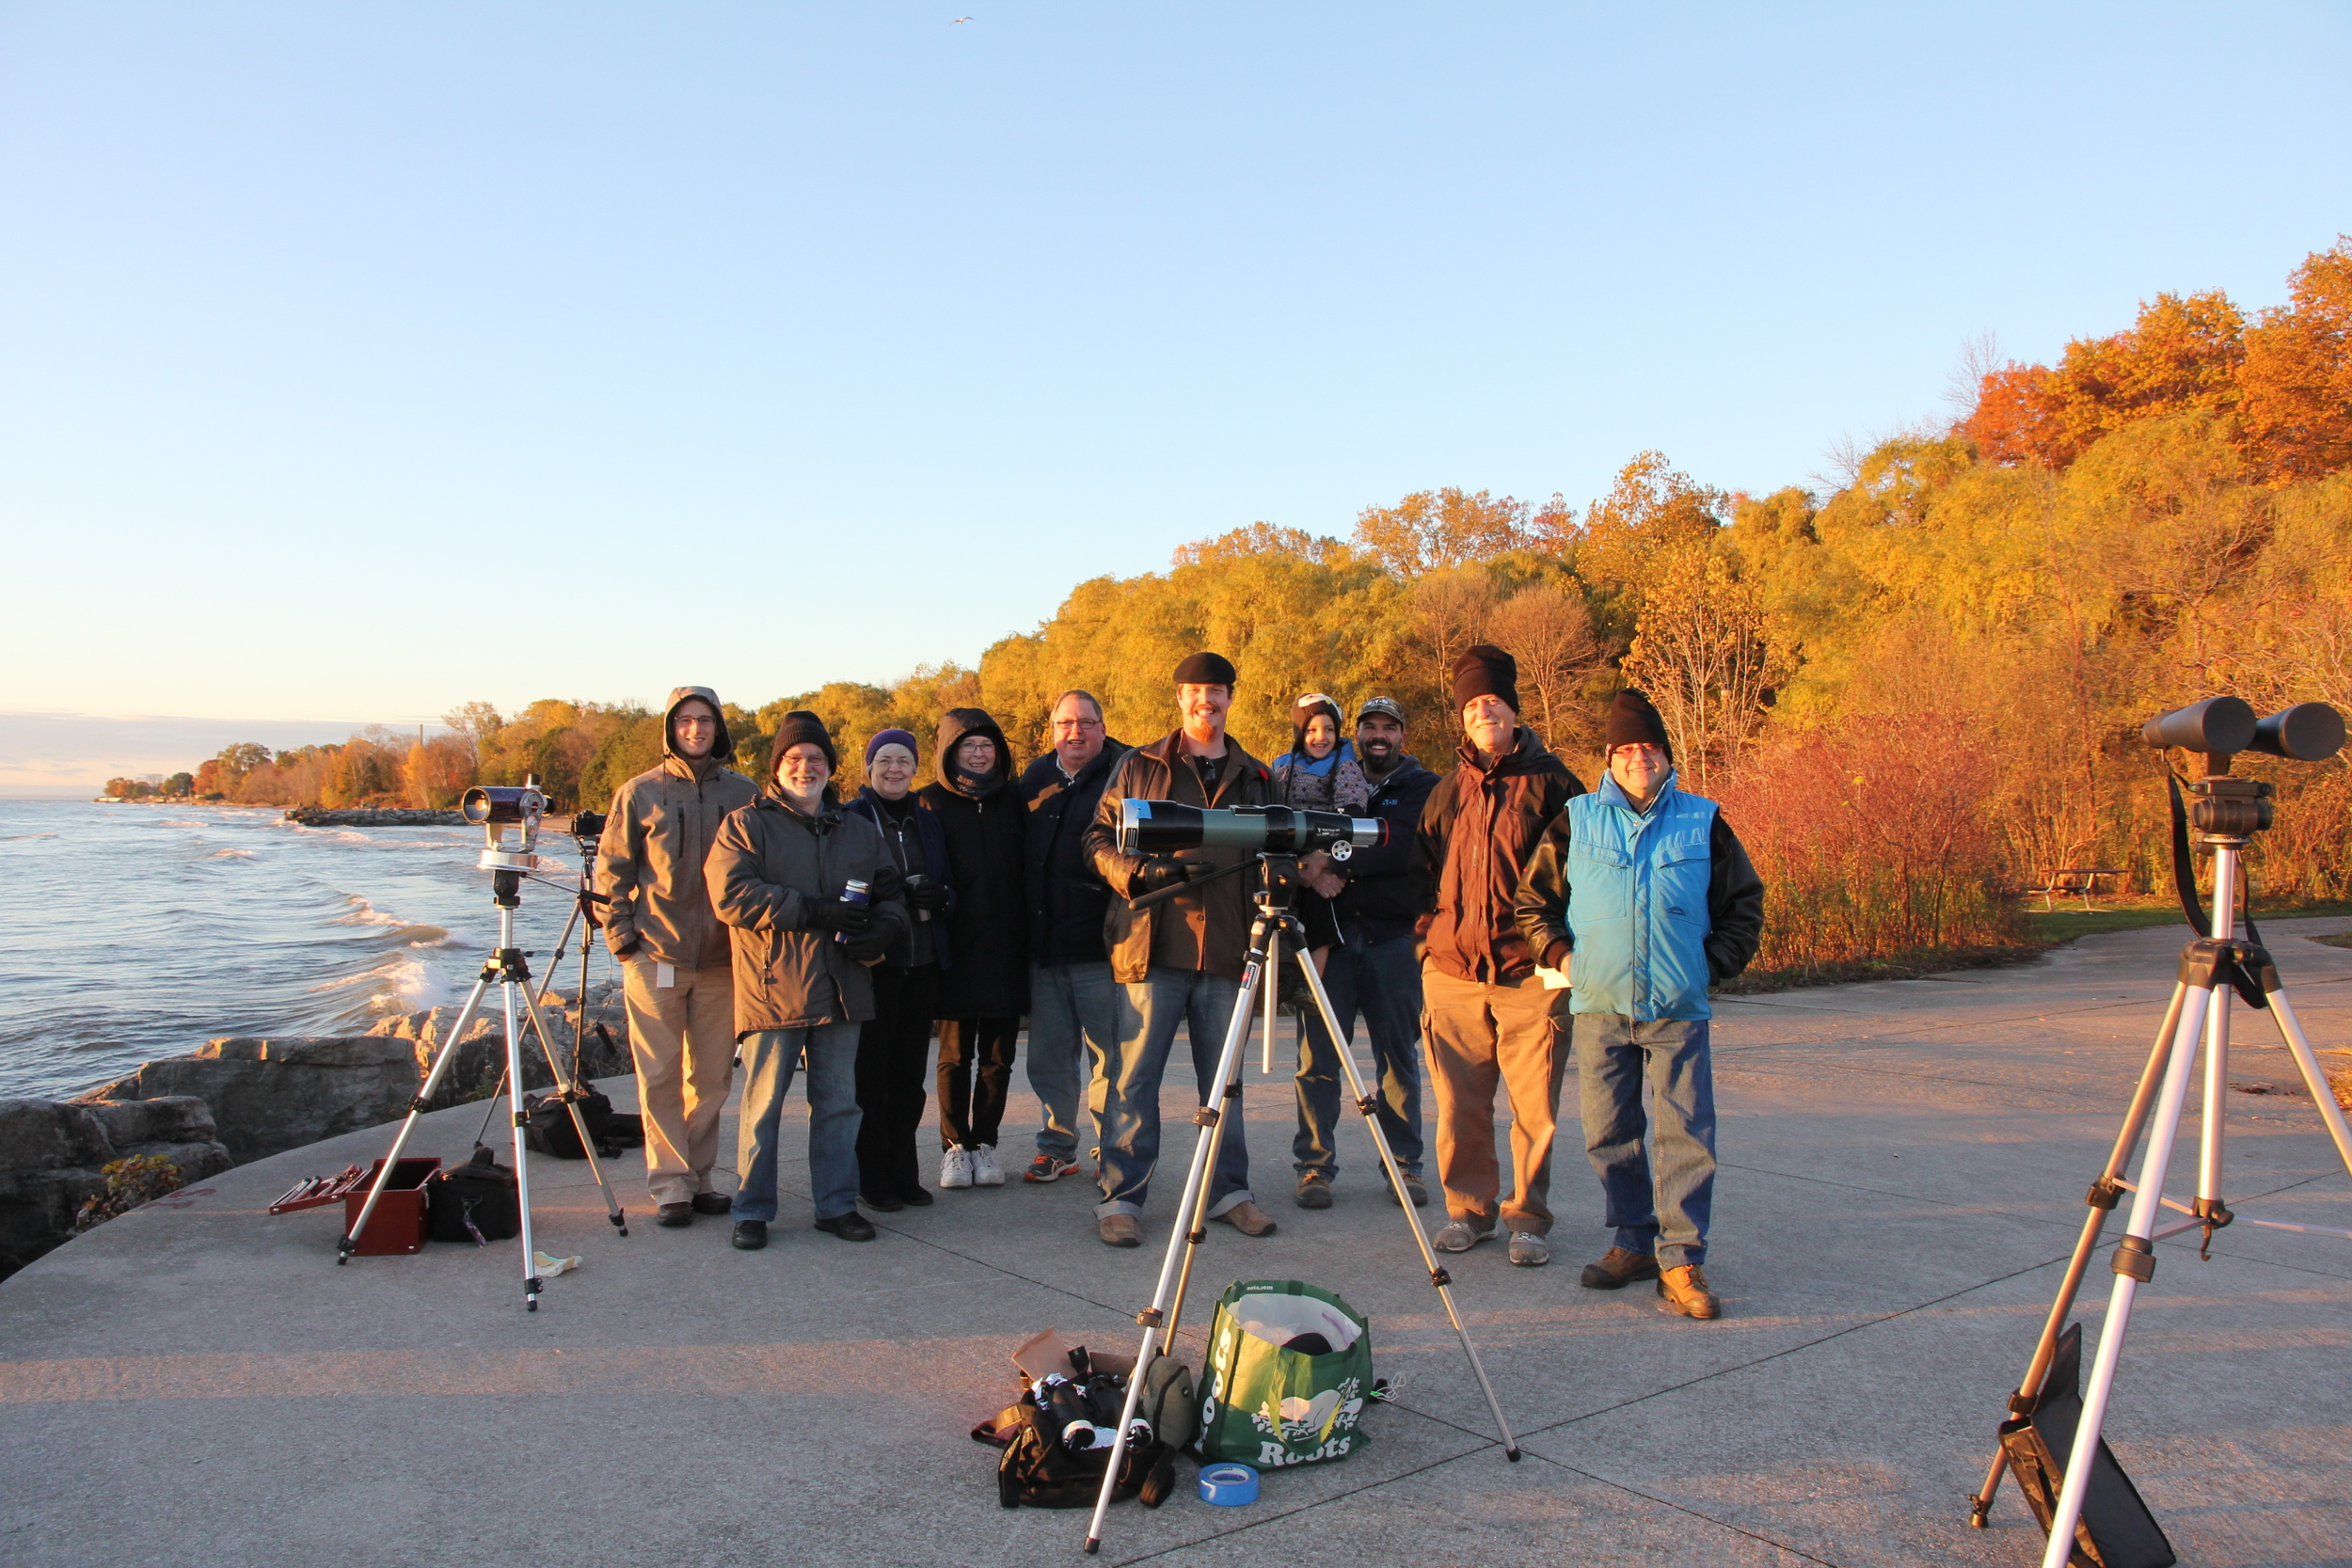 Eclipse success! Members of the Mississauga Centre of the Royal Astronomical Society after observing the partial solar eclipse. Photo by Liz Malicki